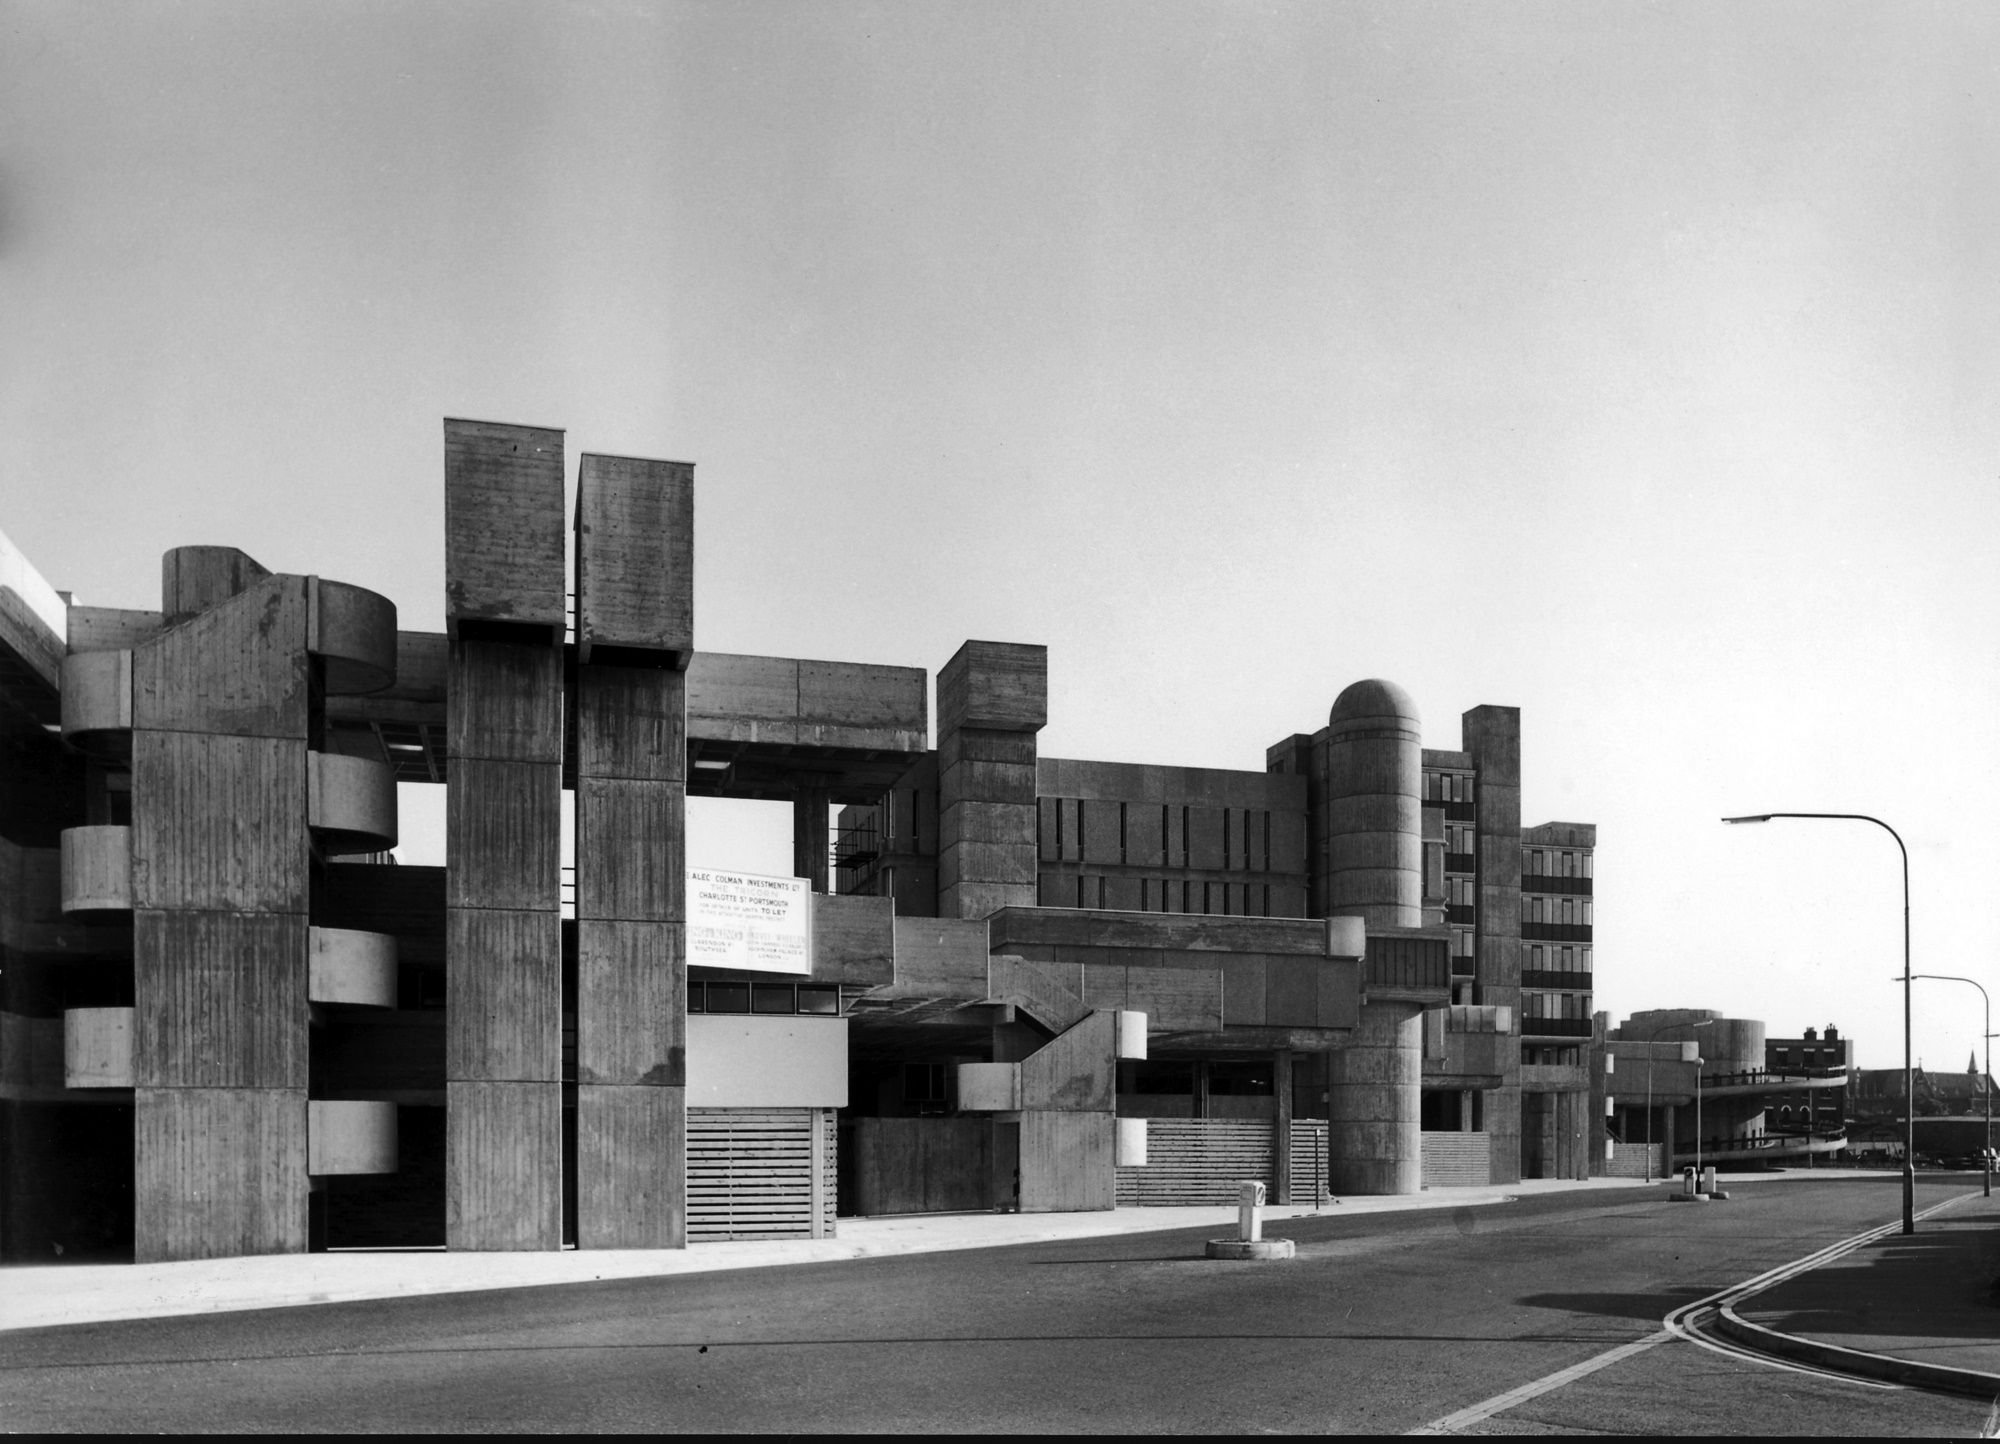 The site of the Tricorn Centre in Portsmouth, demolished in 2004, could remain empty for a decade after developer Centros said it wants to extend the planning agreement for its £500 million shopping centre by five years